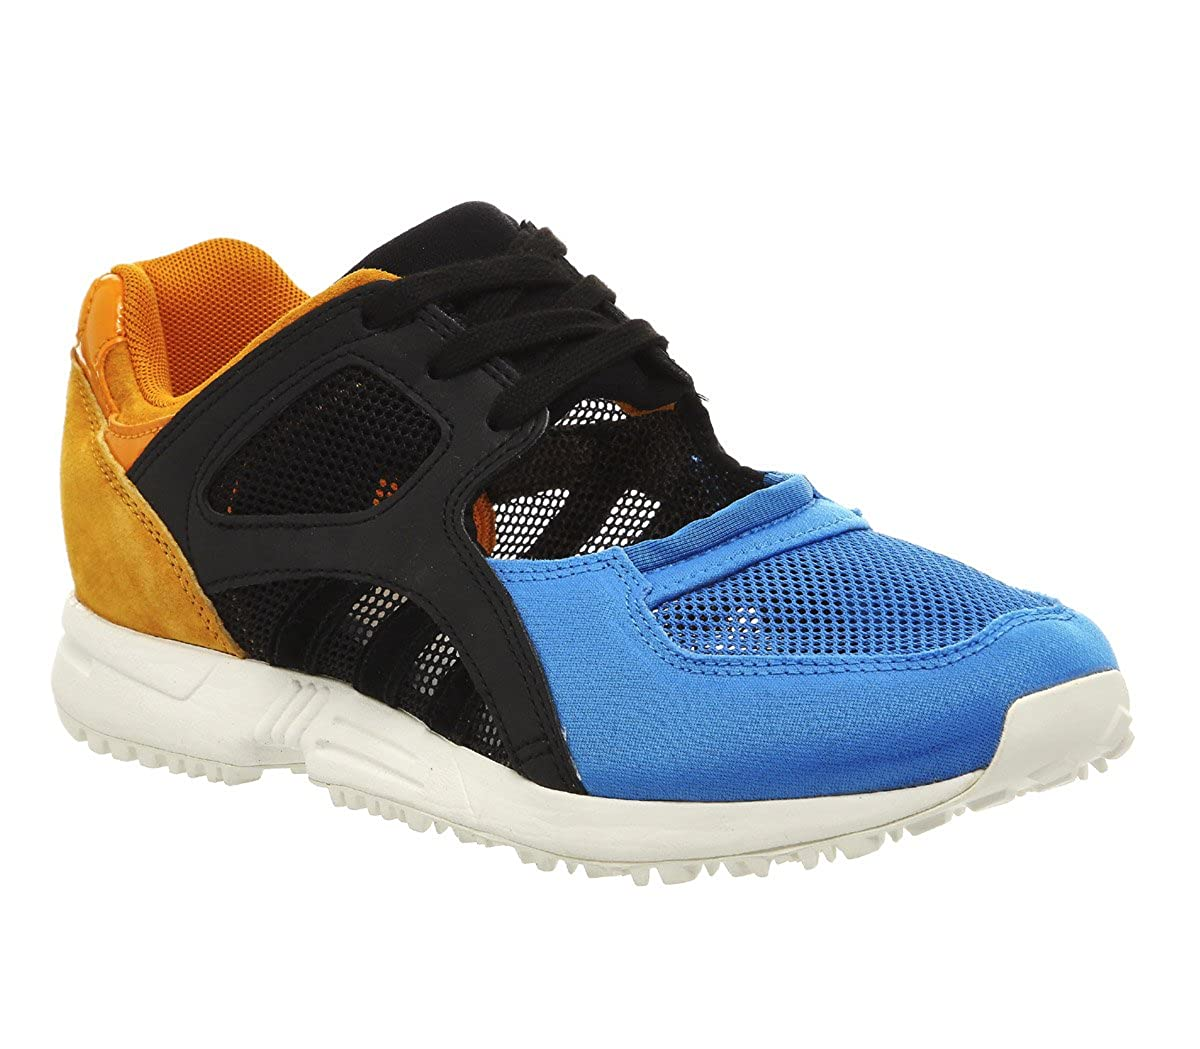 reputable site 17f9f 32d79 adidas EQT Racing Og Amazon.co.uk Shoes  Bags